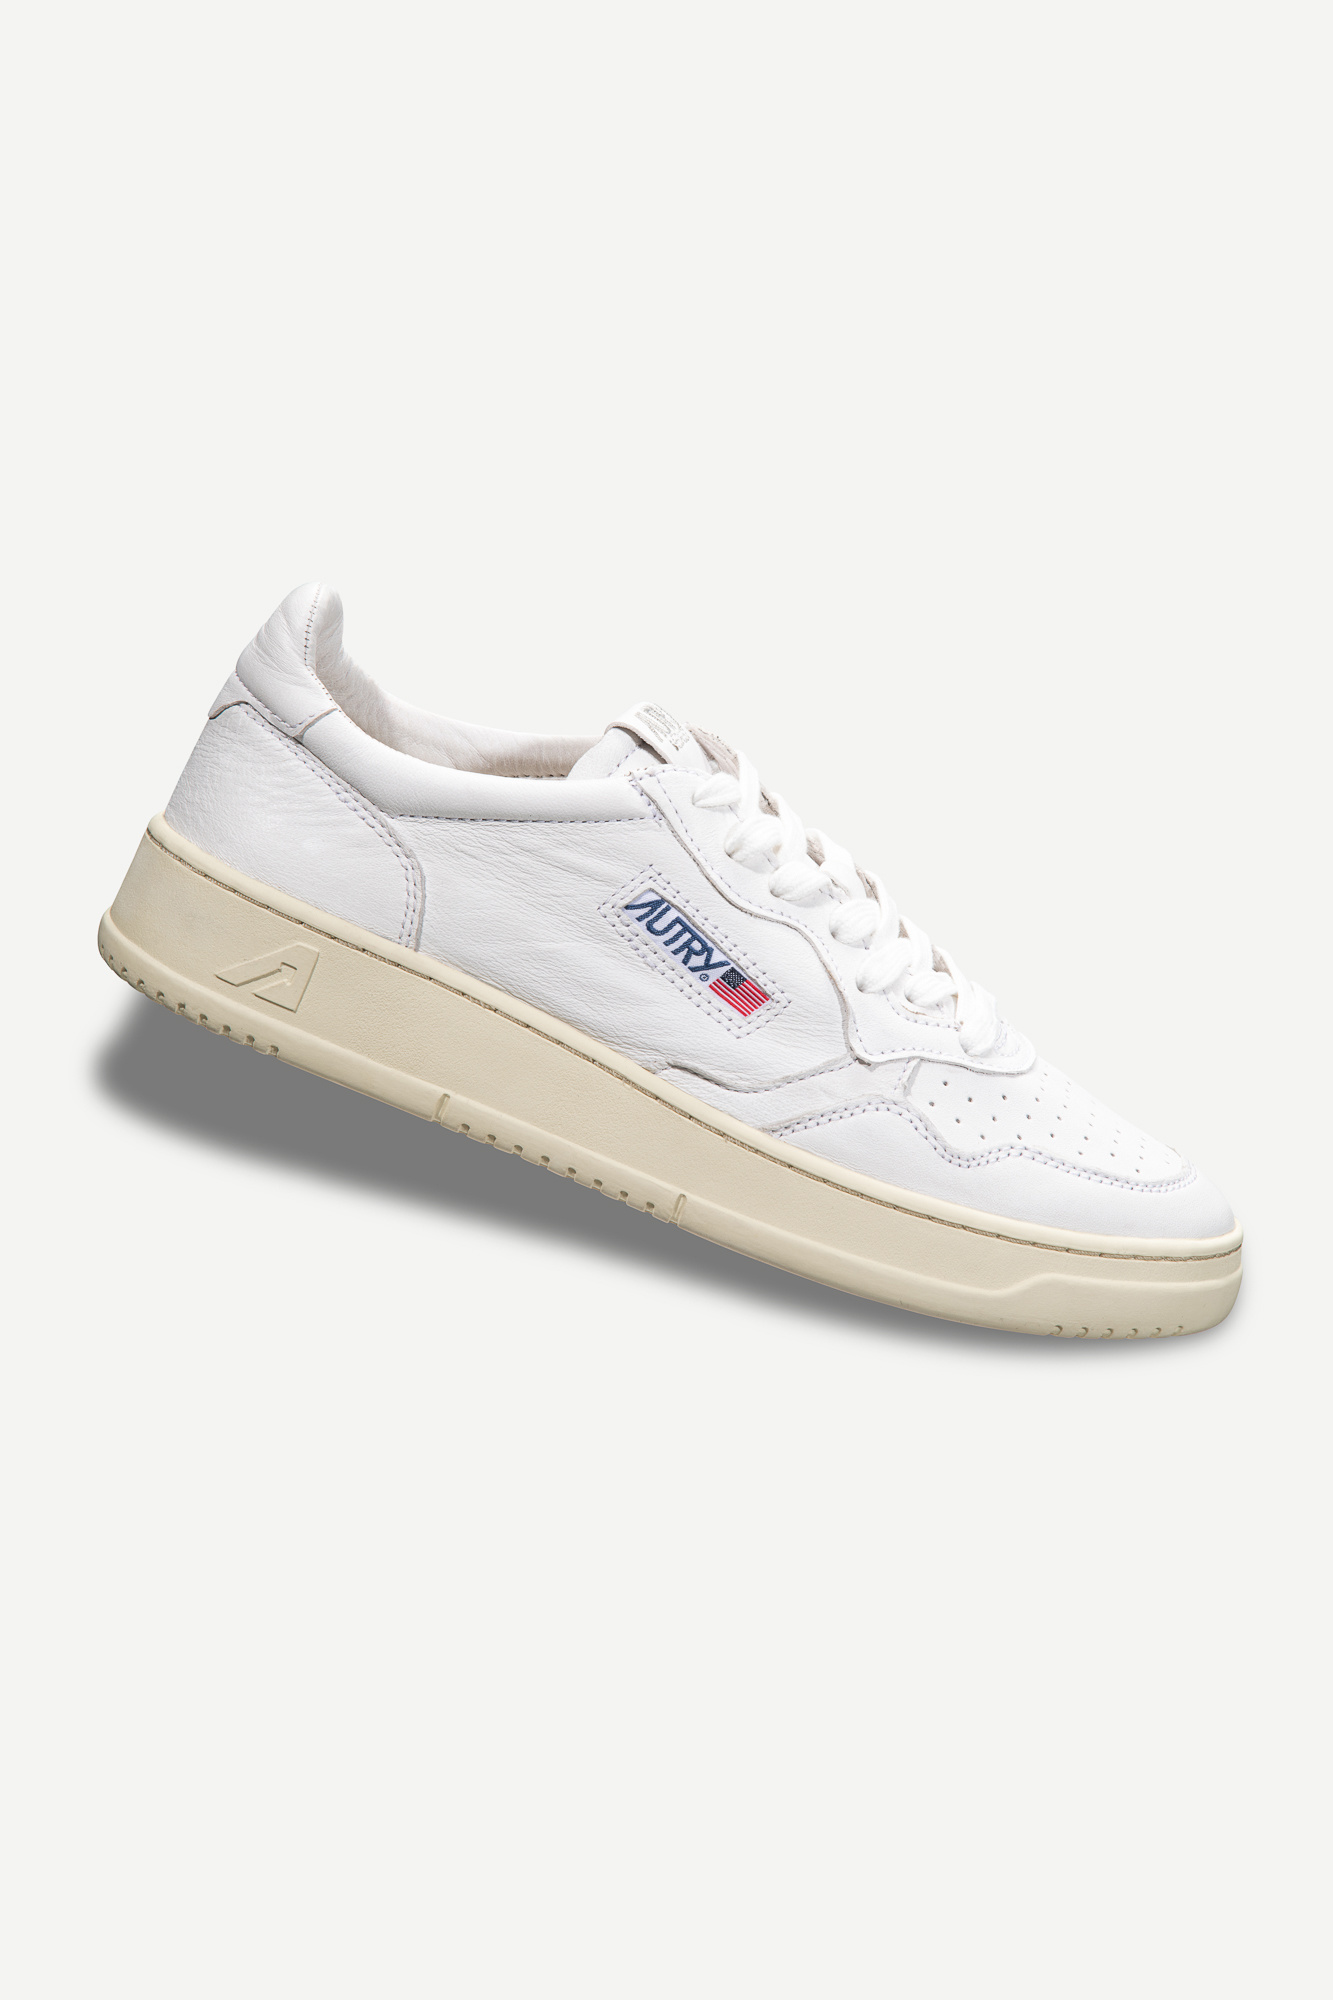 Medalist 01 Low Goat White Leather Women-1